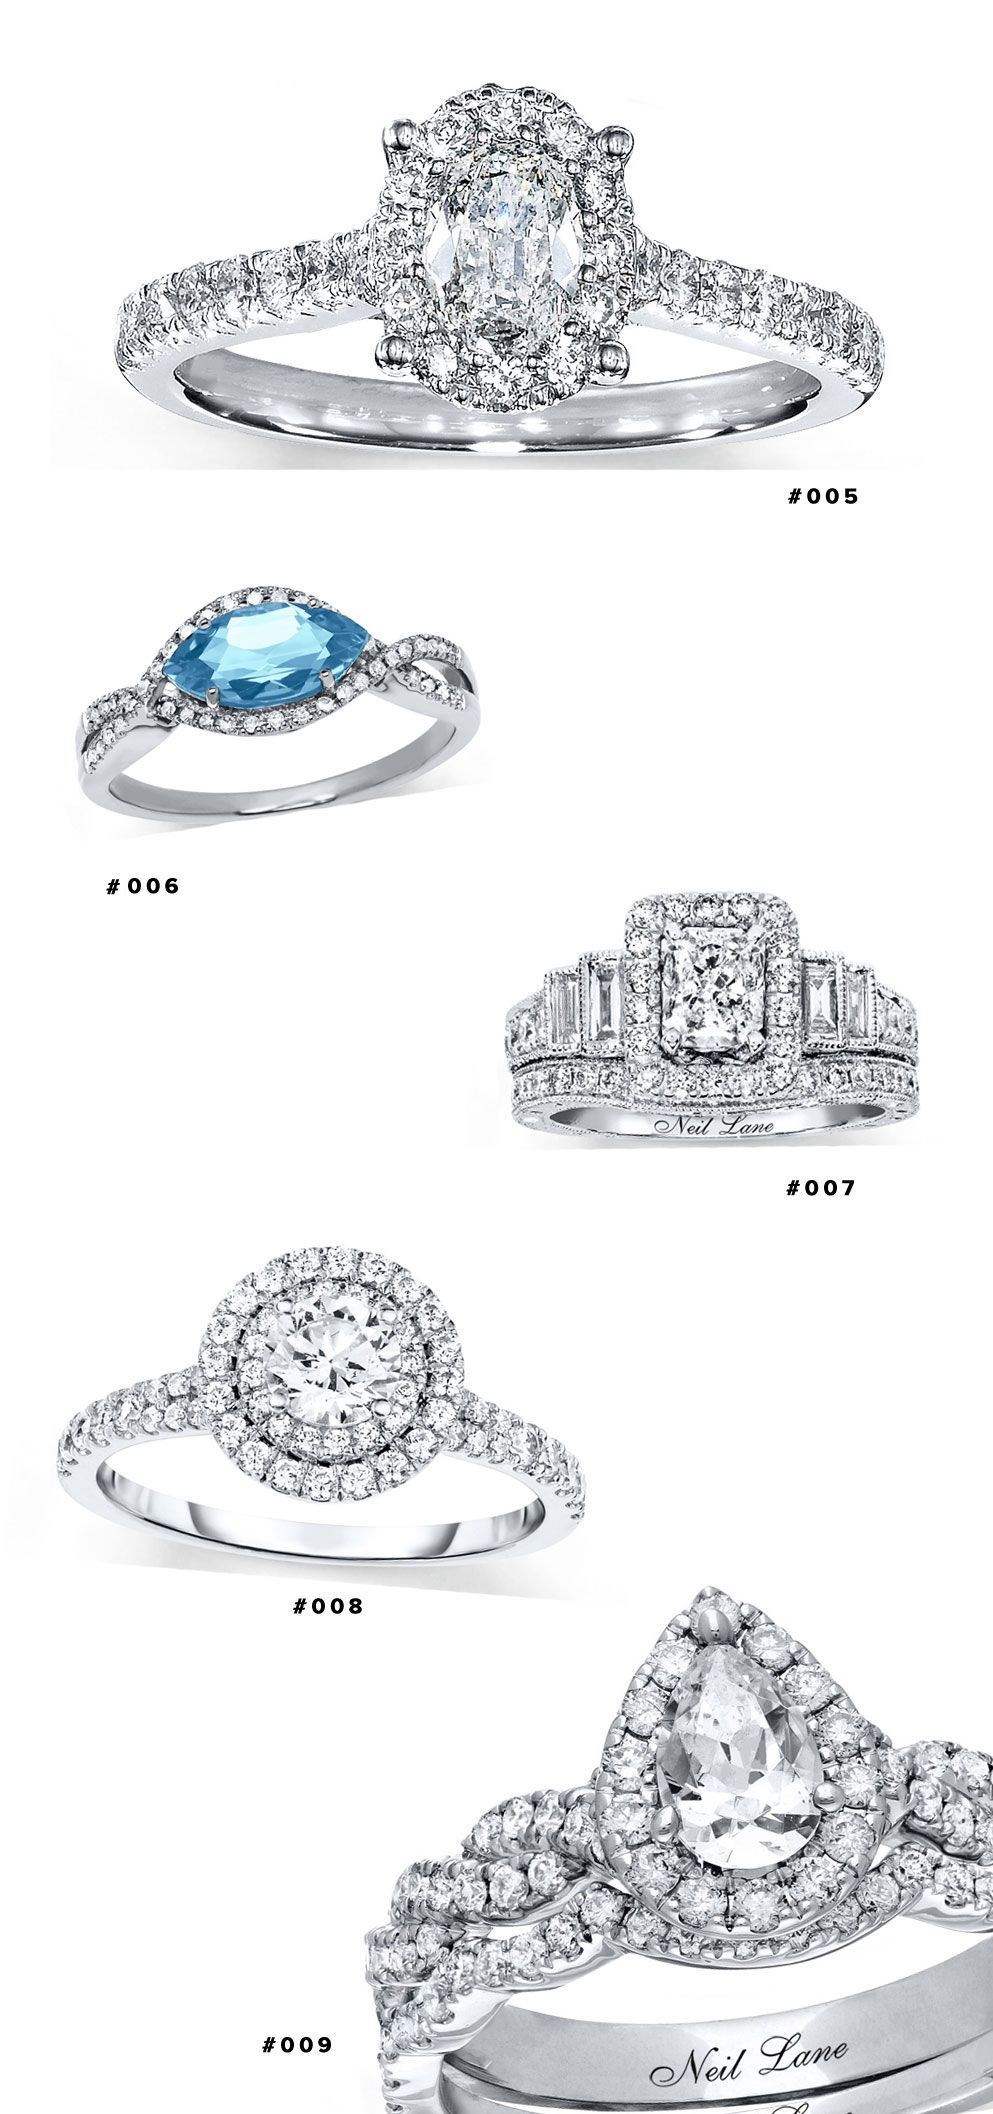 10 Bridal Ring Styles to Drool Over